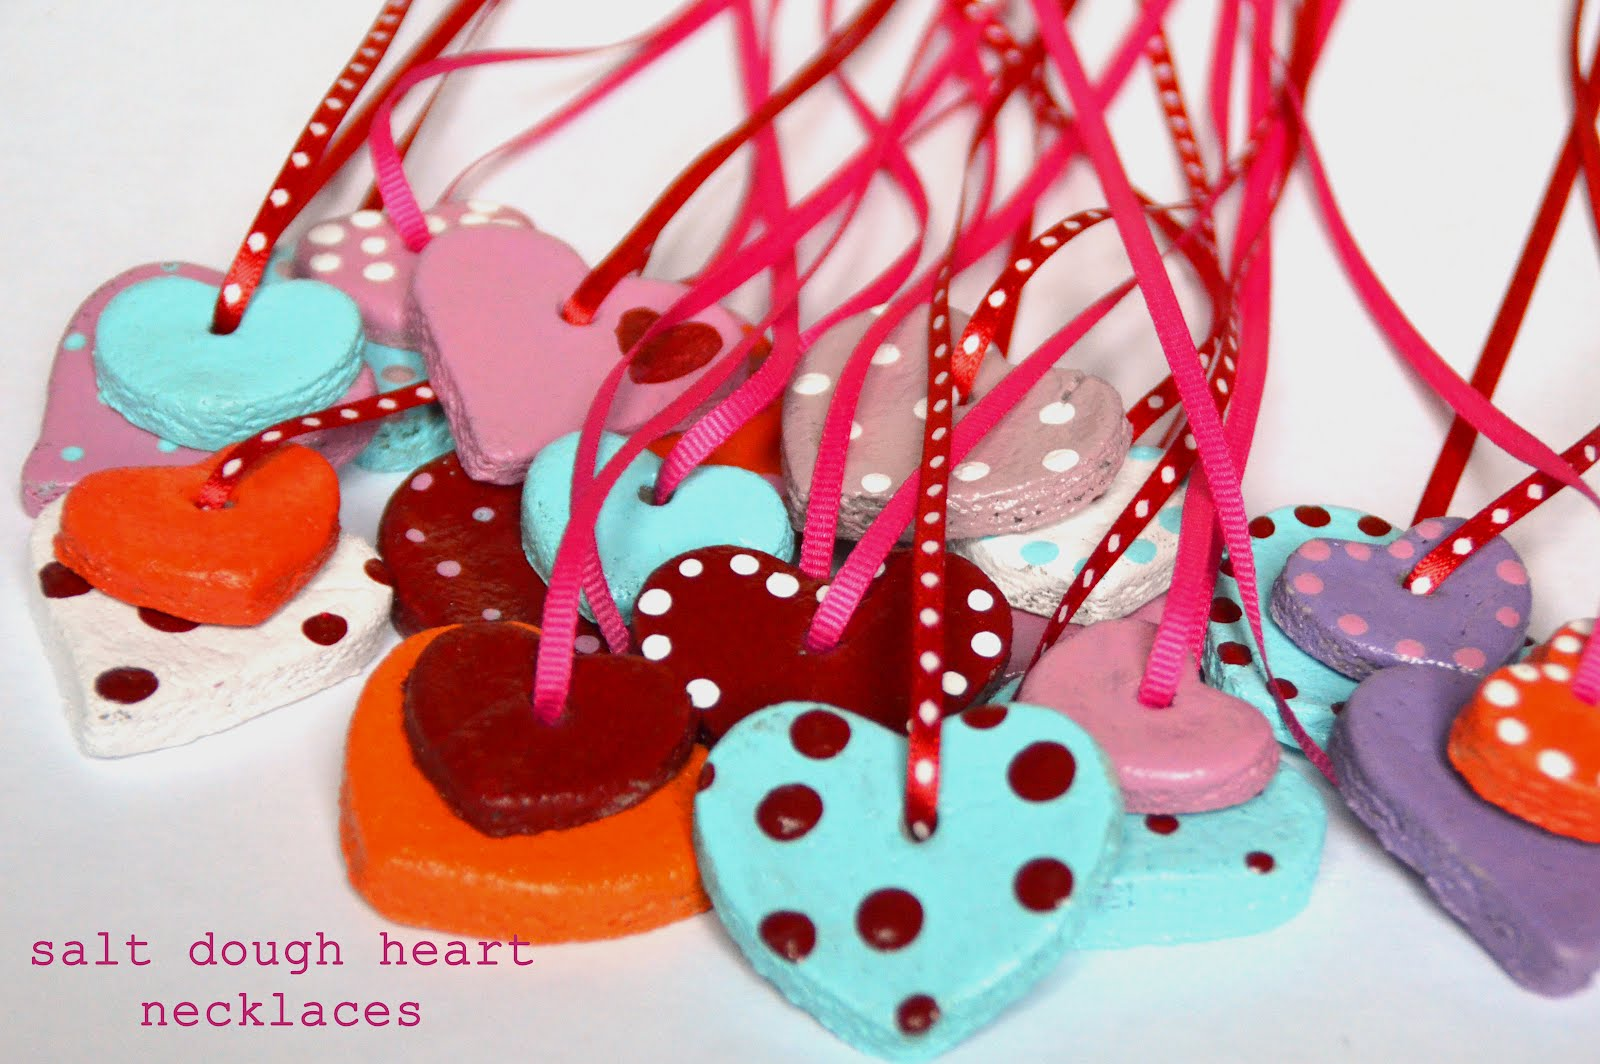 Amazing mae salt dough valentine heart necklaces my daughter and i thought it would be fun to make some necklaces for her friends for valentines this year in the past we have used salt dough to make heart aloadofball Choice Image